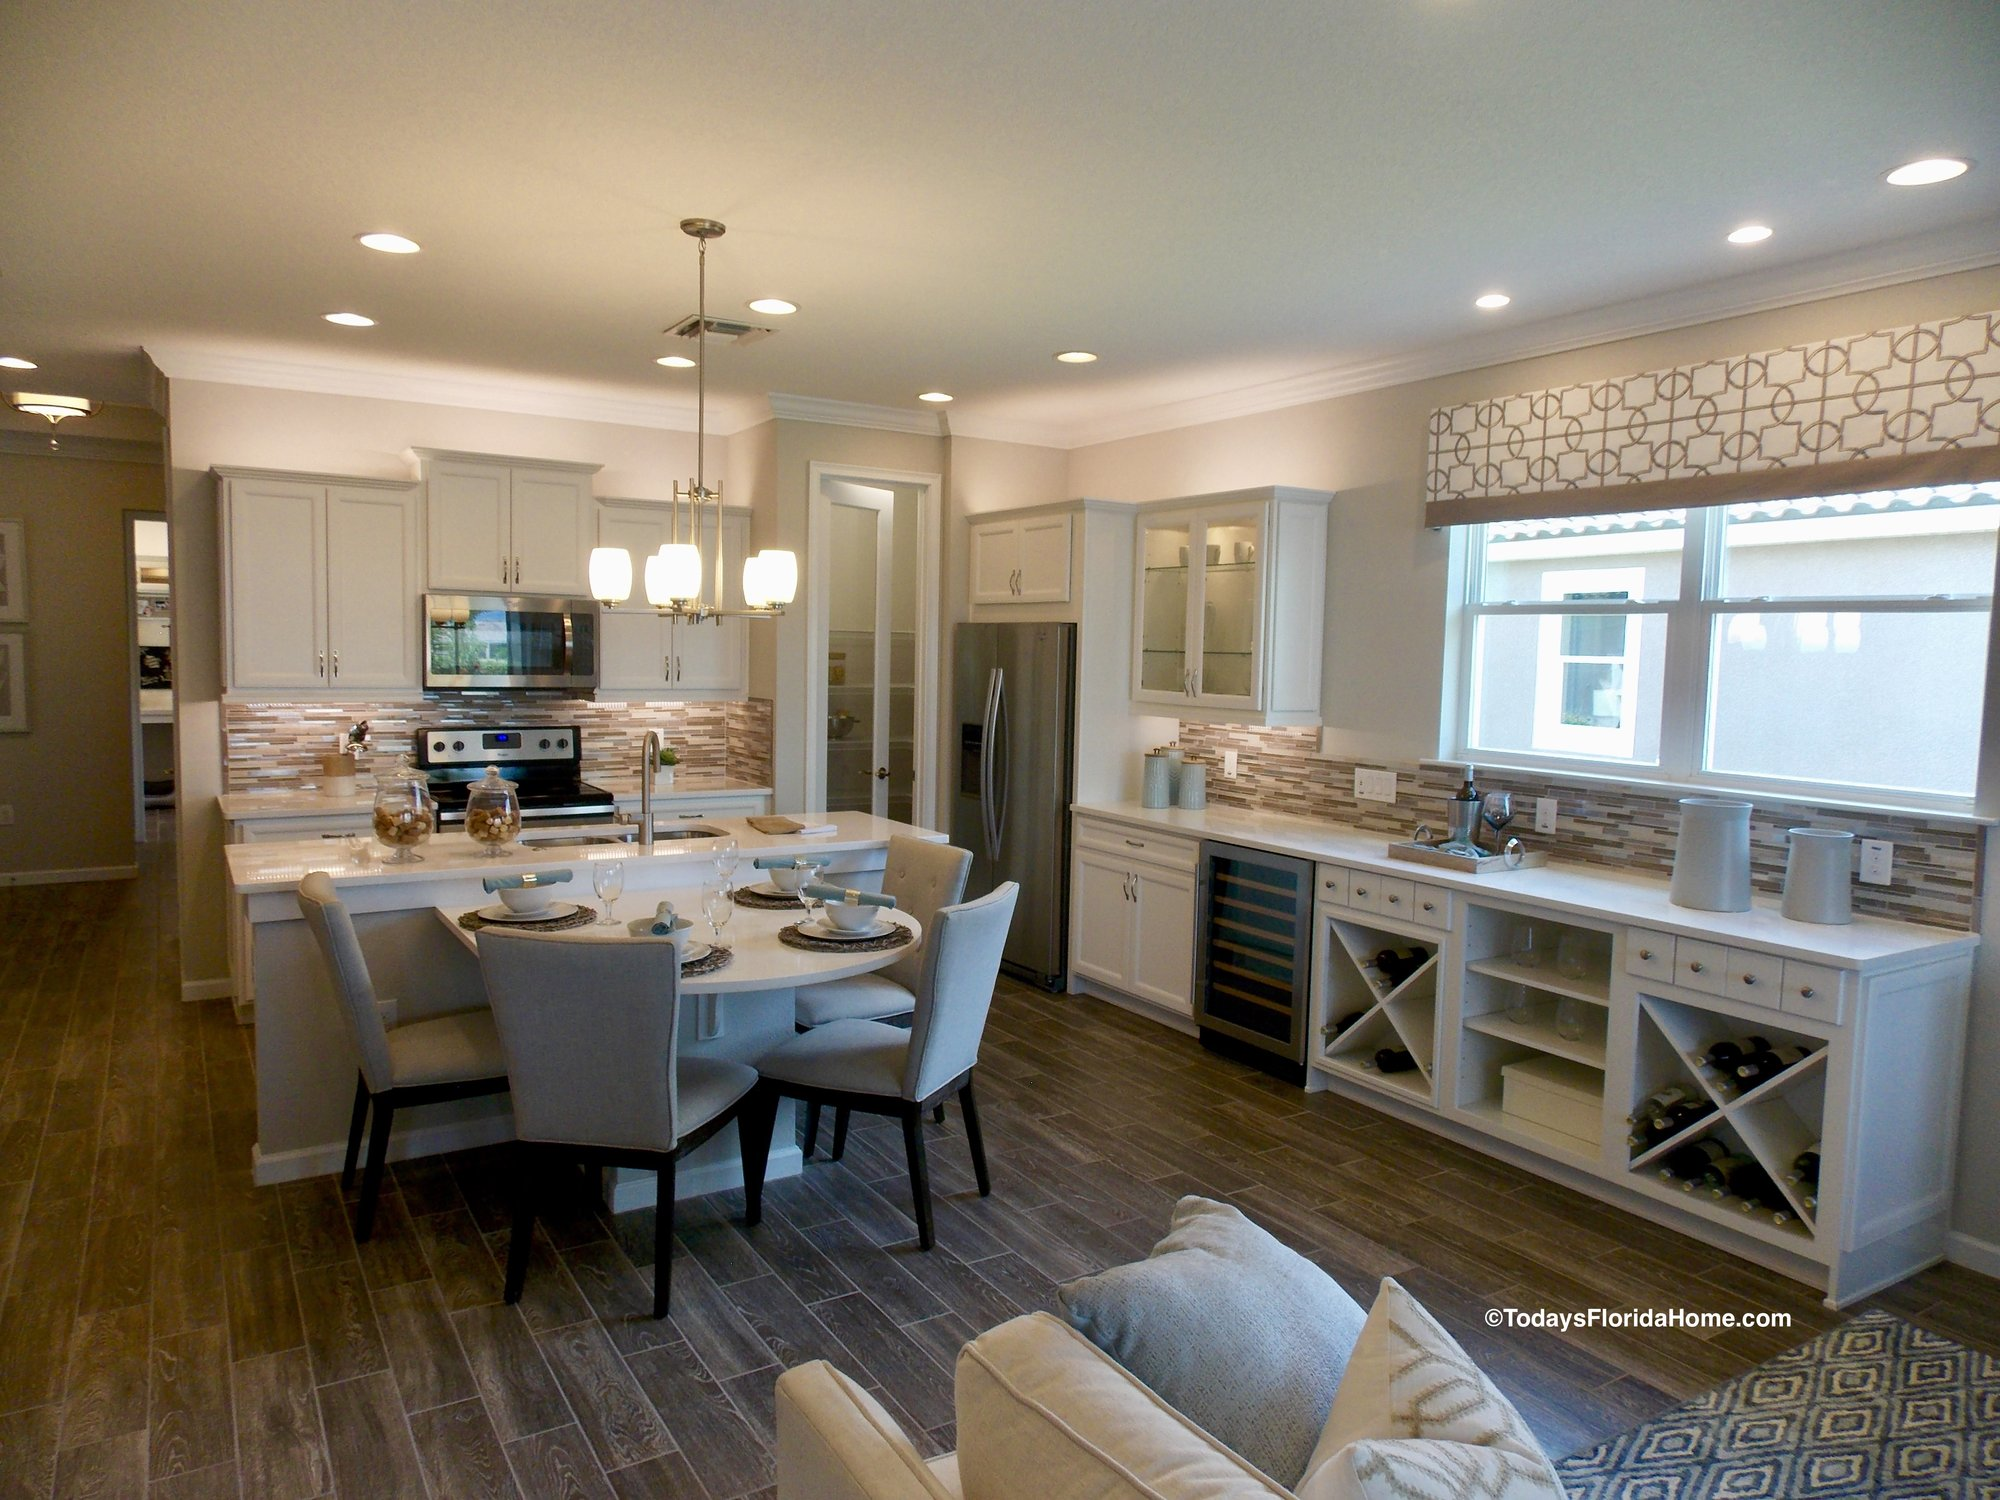 Bonavie Cove, New Homes Fort Myers, New Construction Fort Myers, Mattamy Home, Plantations